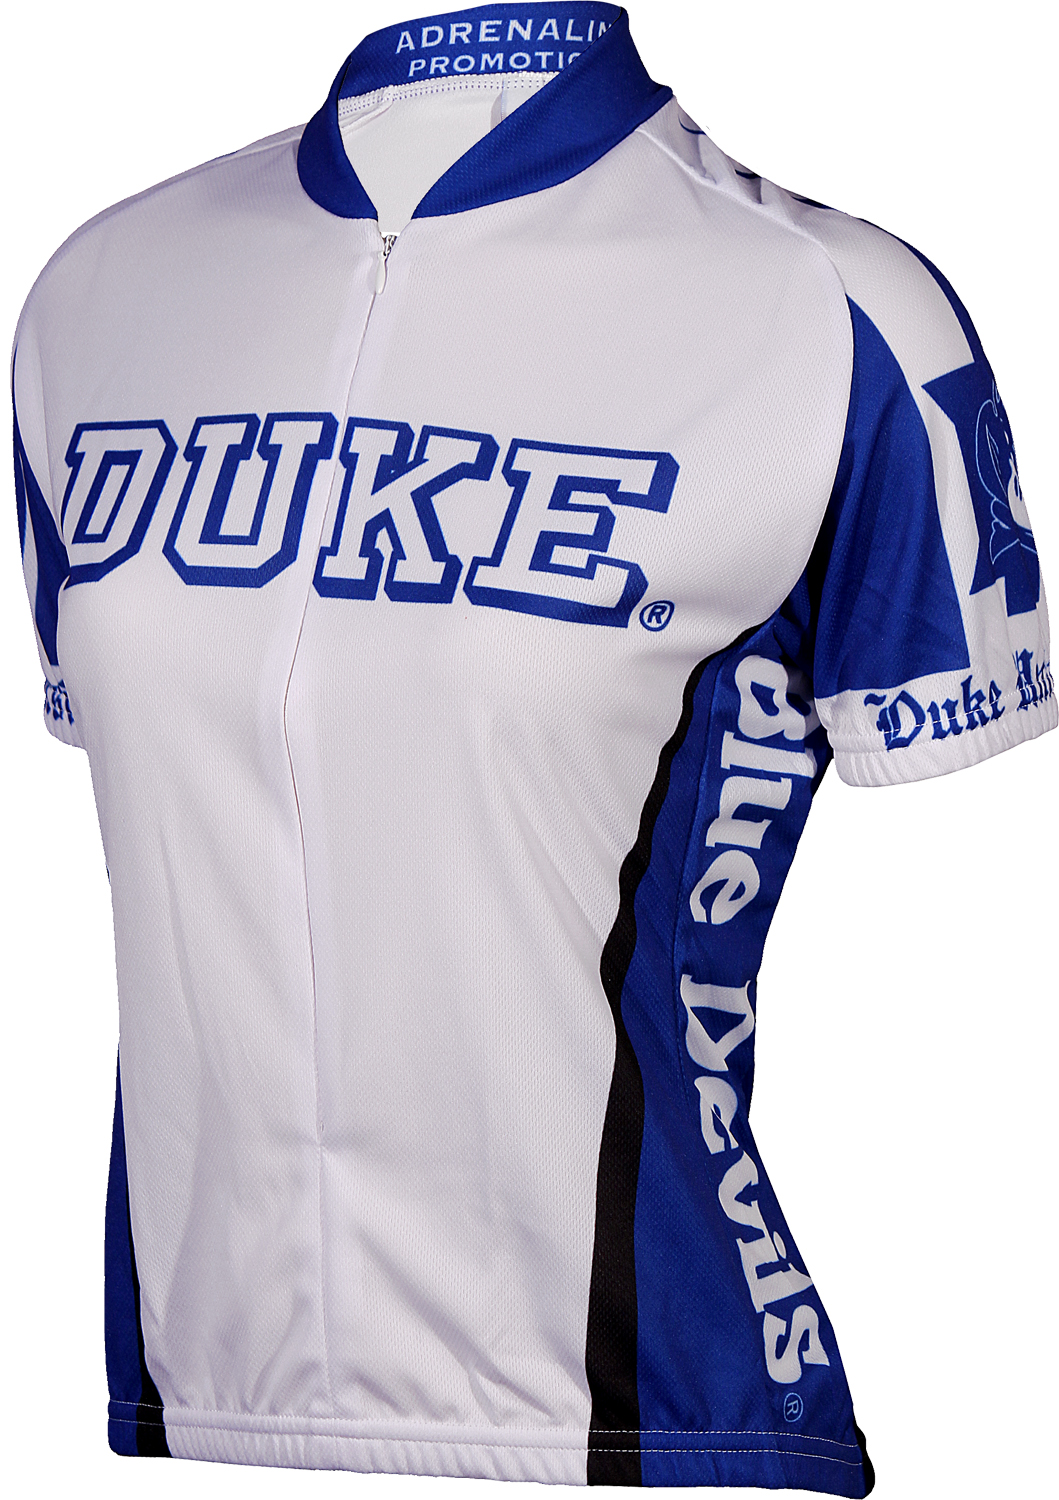 Duke University Blue Devils Women's Cycling Jersey